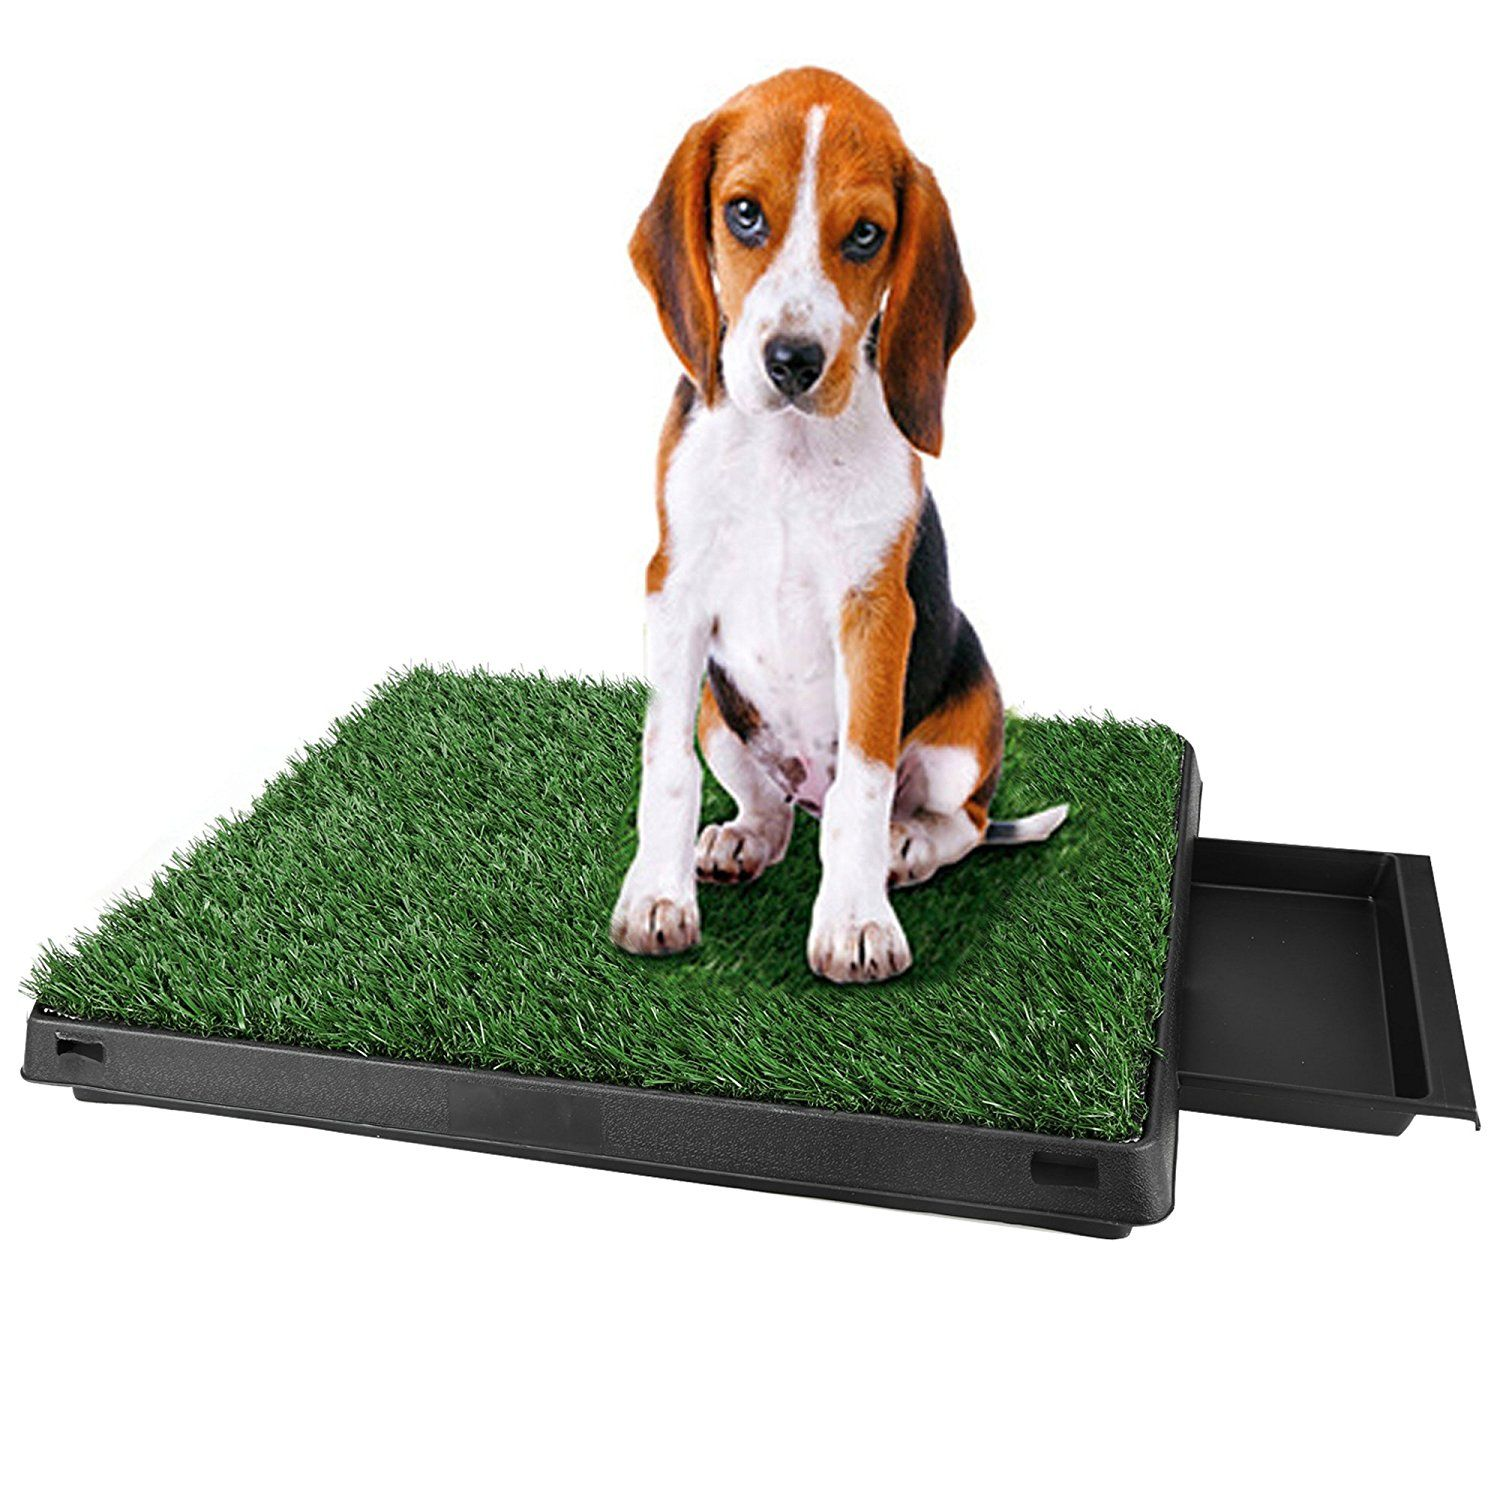 Puppy Pads Indoor Potty Potty Patch Dog Grass Mat Training Pad Pet